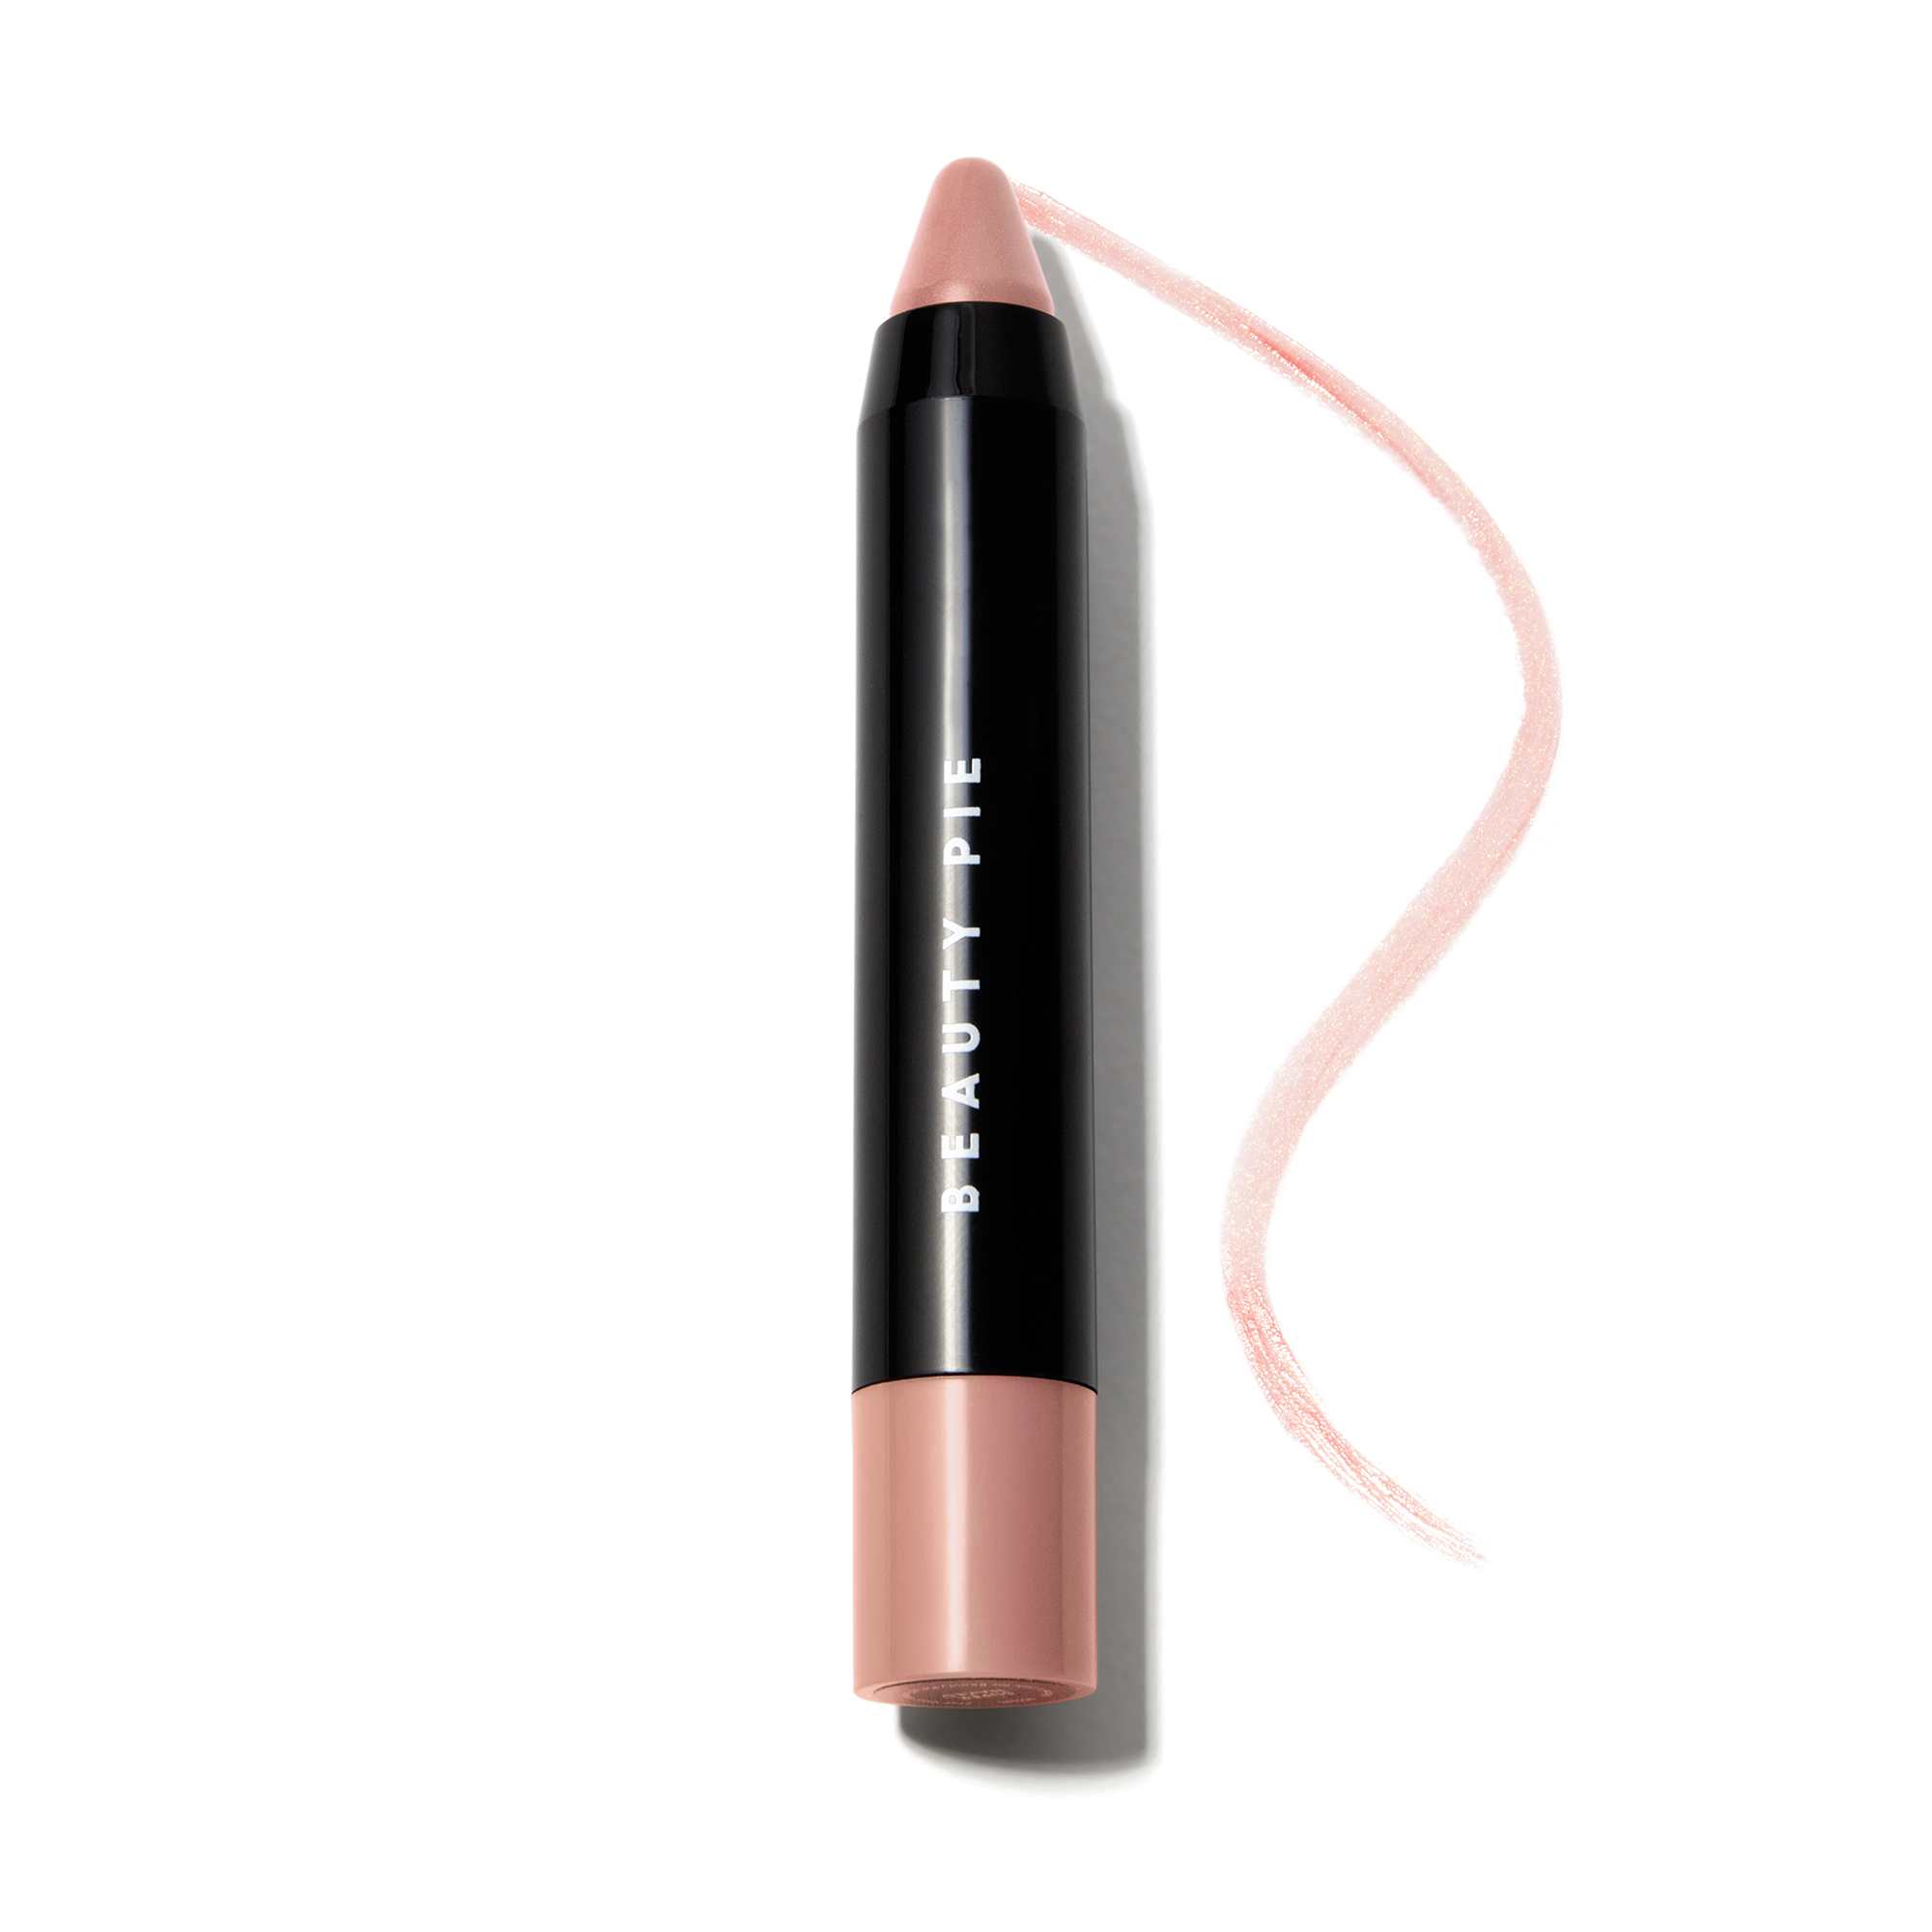 Image for Shine Up™ Lip Colour Balm Stick from BeautyPie US